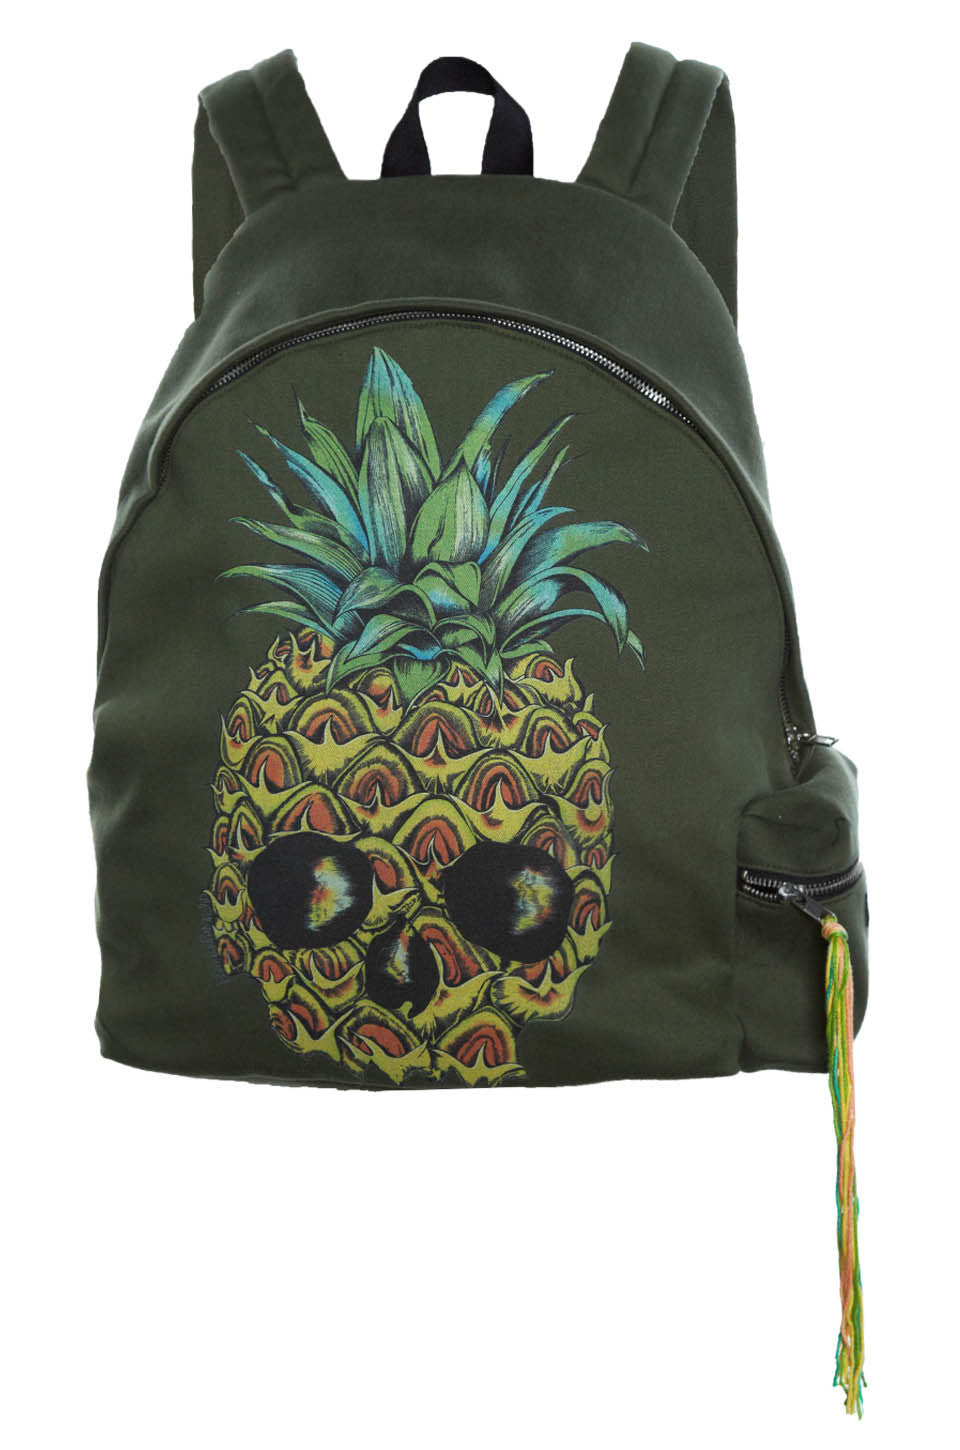 Quincy Color Pineapple Skull Backpack - Lauren Moshi - 2